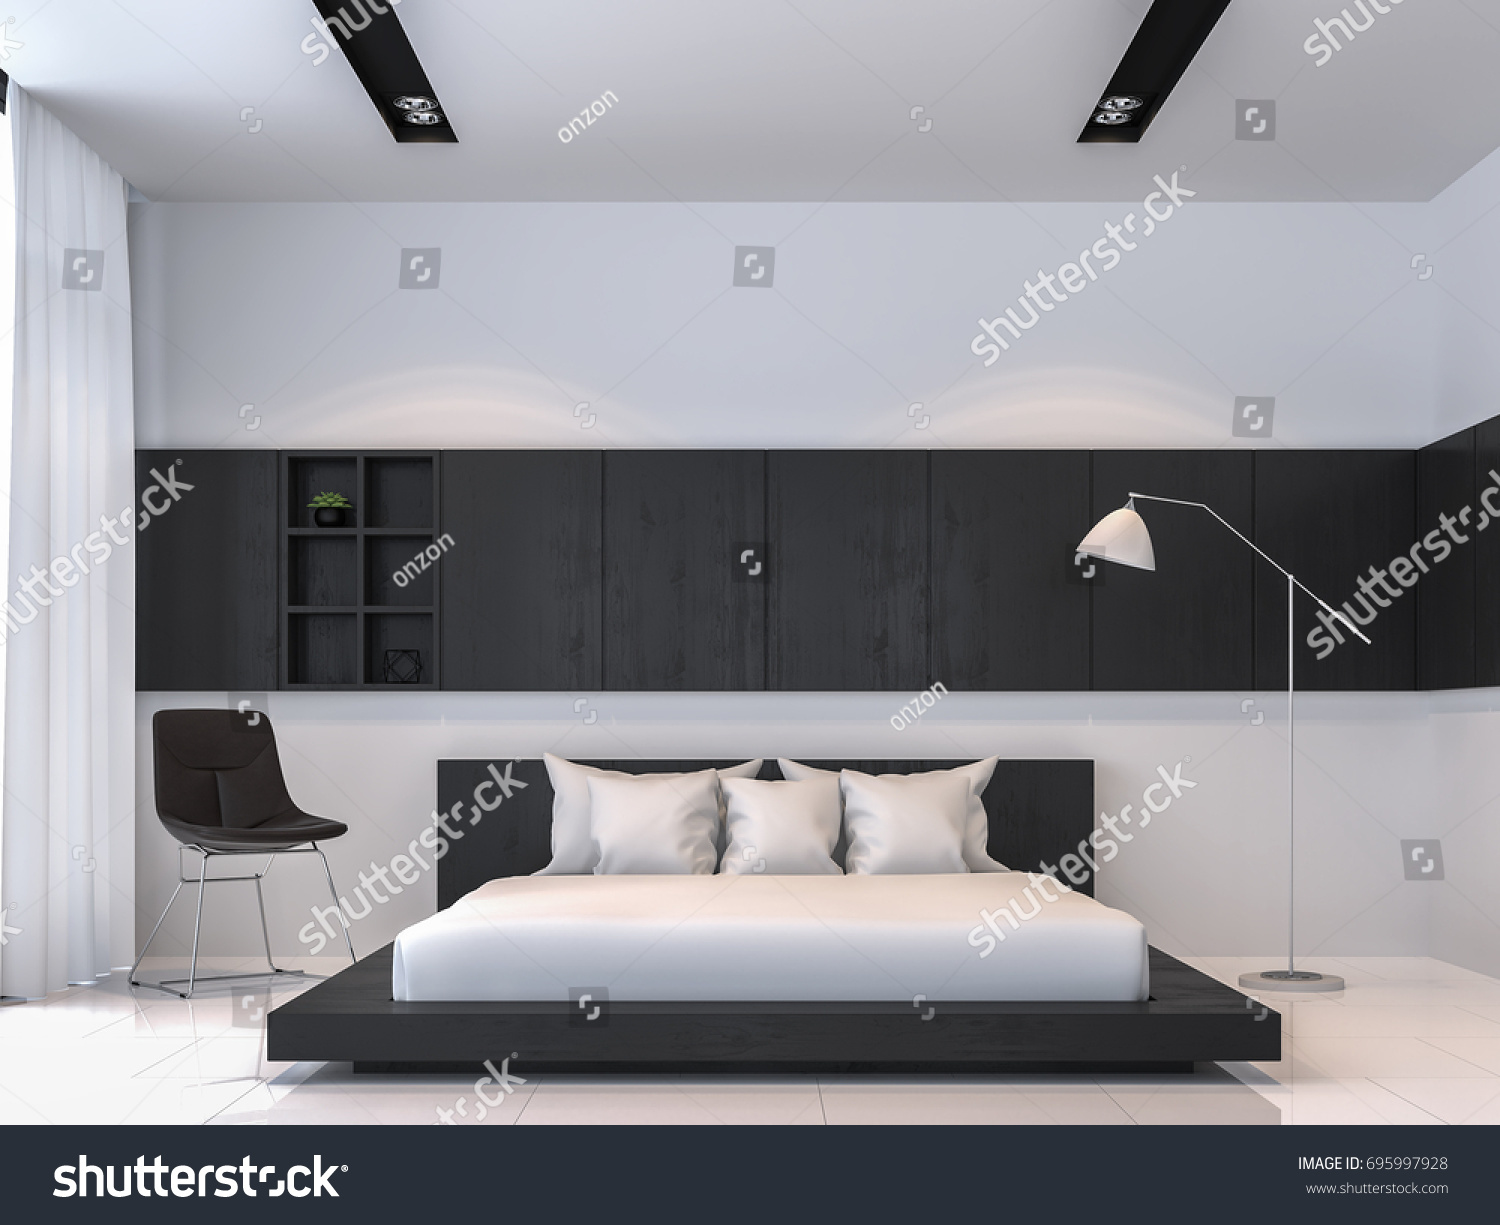 Modern Black White Bedroom Interior Minimal Stock Illustration 695997928